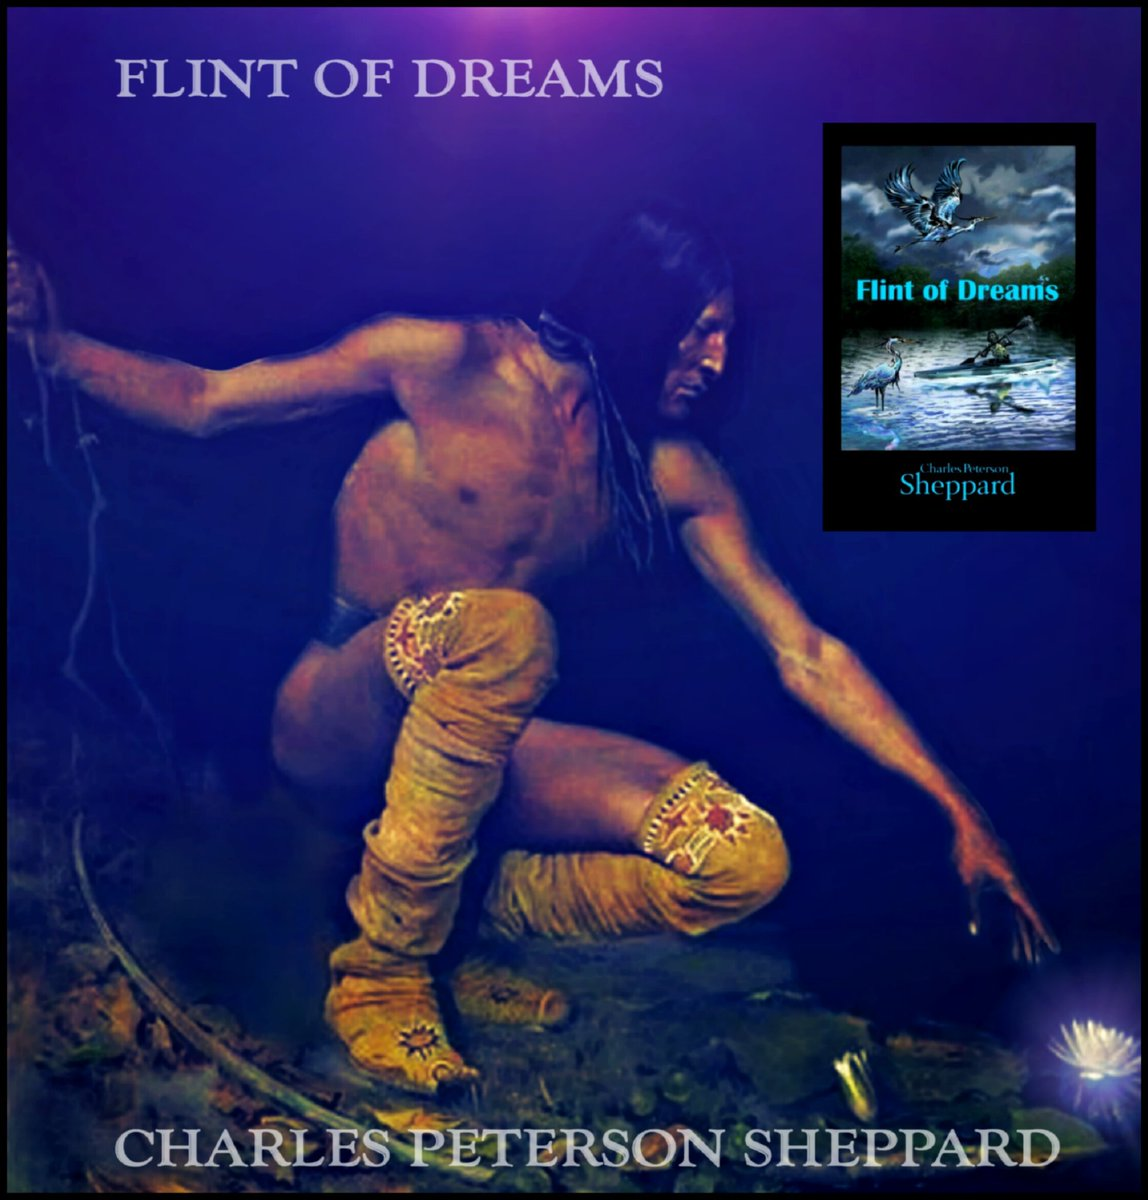 This is just one of the great books collected from around the world by  The Whole World News™ with over 1,732,680 real people visiting!  #NativeAmerican #paranormal  - #Action & #Adventure - #Mystery, #Thriller & #Suspense  https://eprintedbooks.com/wp/flint-of-dreams-by-charles-peterson-sheppard-literature-fiction/ … @CPSWorks14560 #ASMSGpic.twitter.com/Rwh7yxQuGz